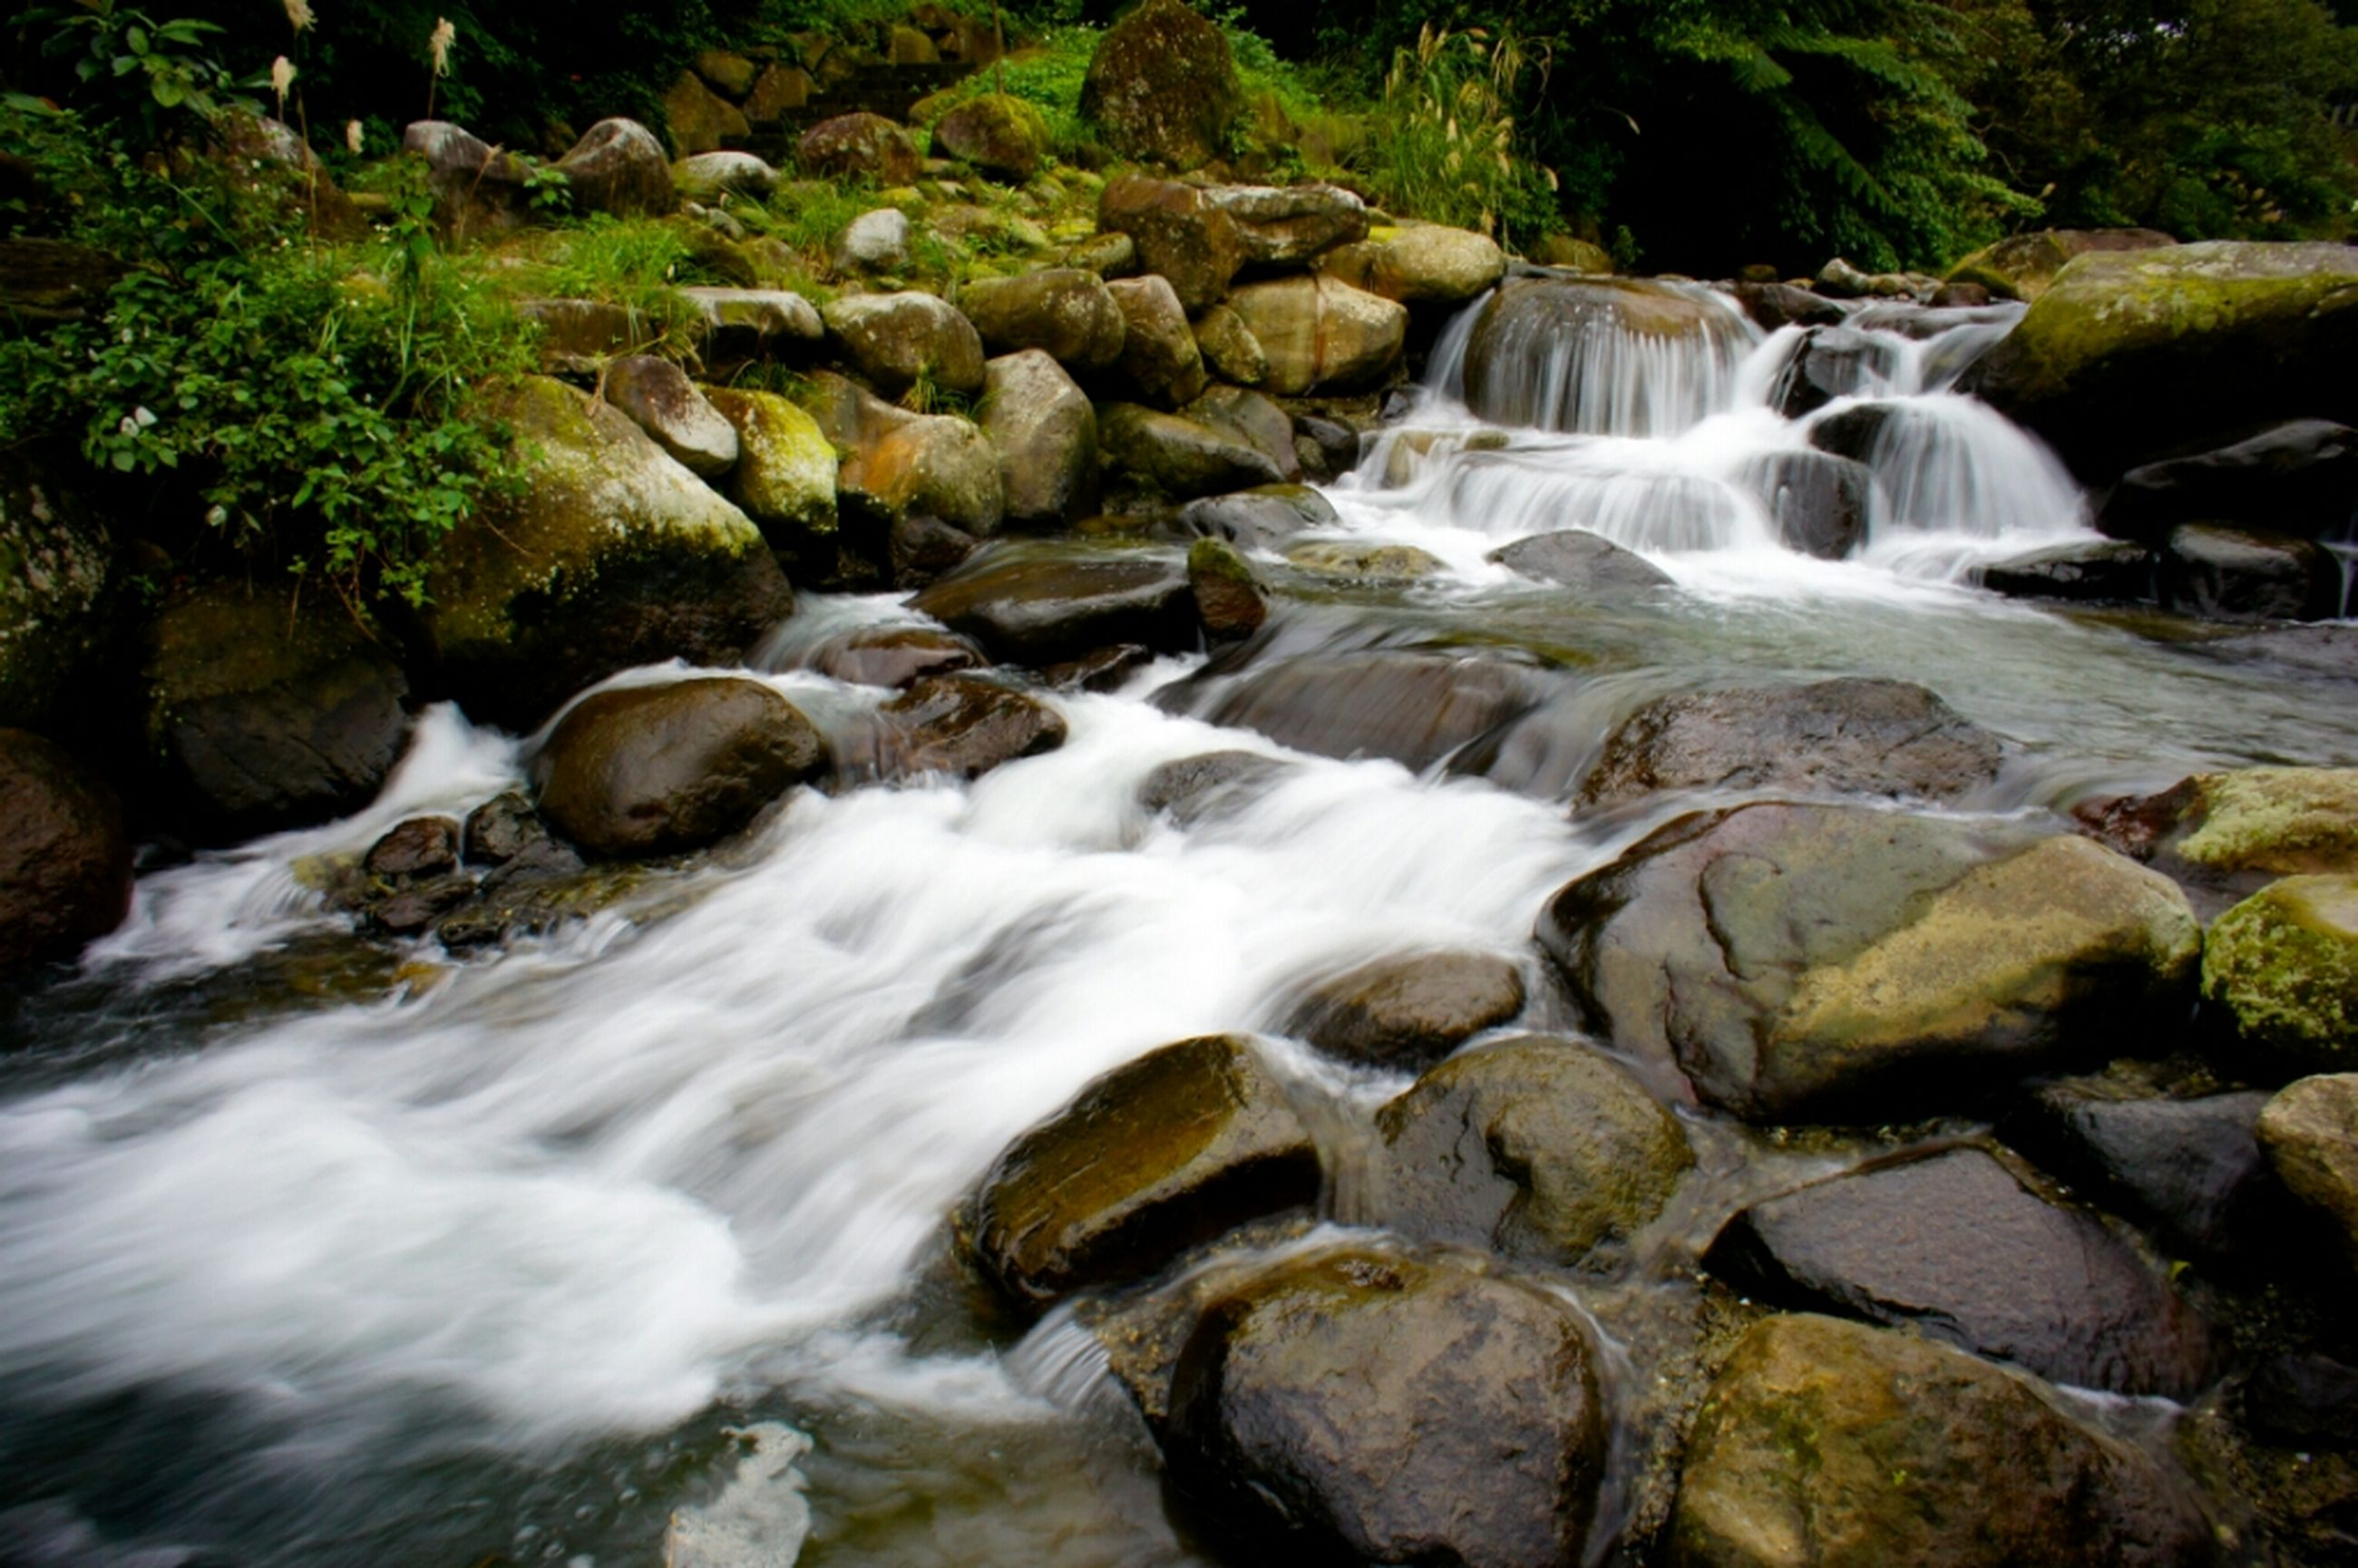 water, flowing water, motion, waterfall, flowing, rock - object, long exposure, forest, stream, beauty in nature, nature, scenics, blurred motion, rock, river, surf, tree, idyllic, day, outdoors